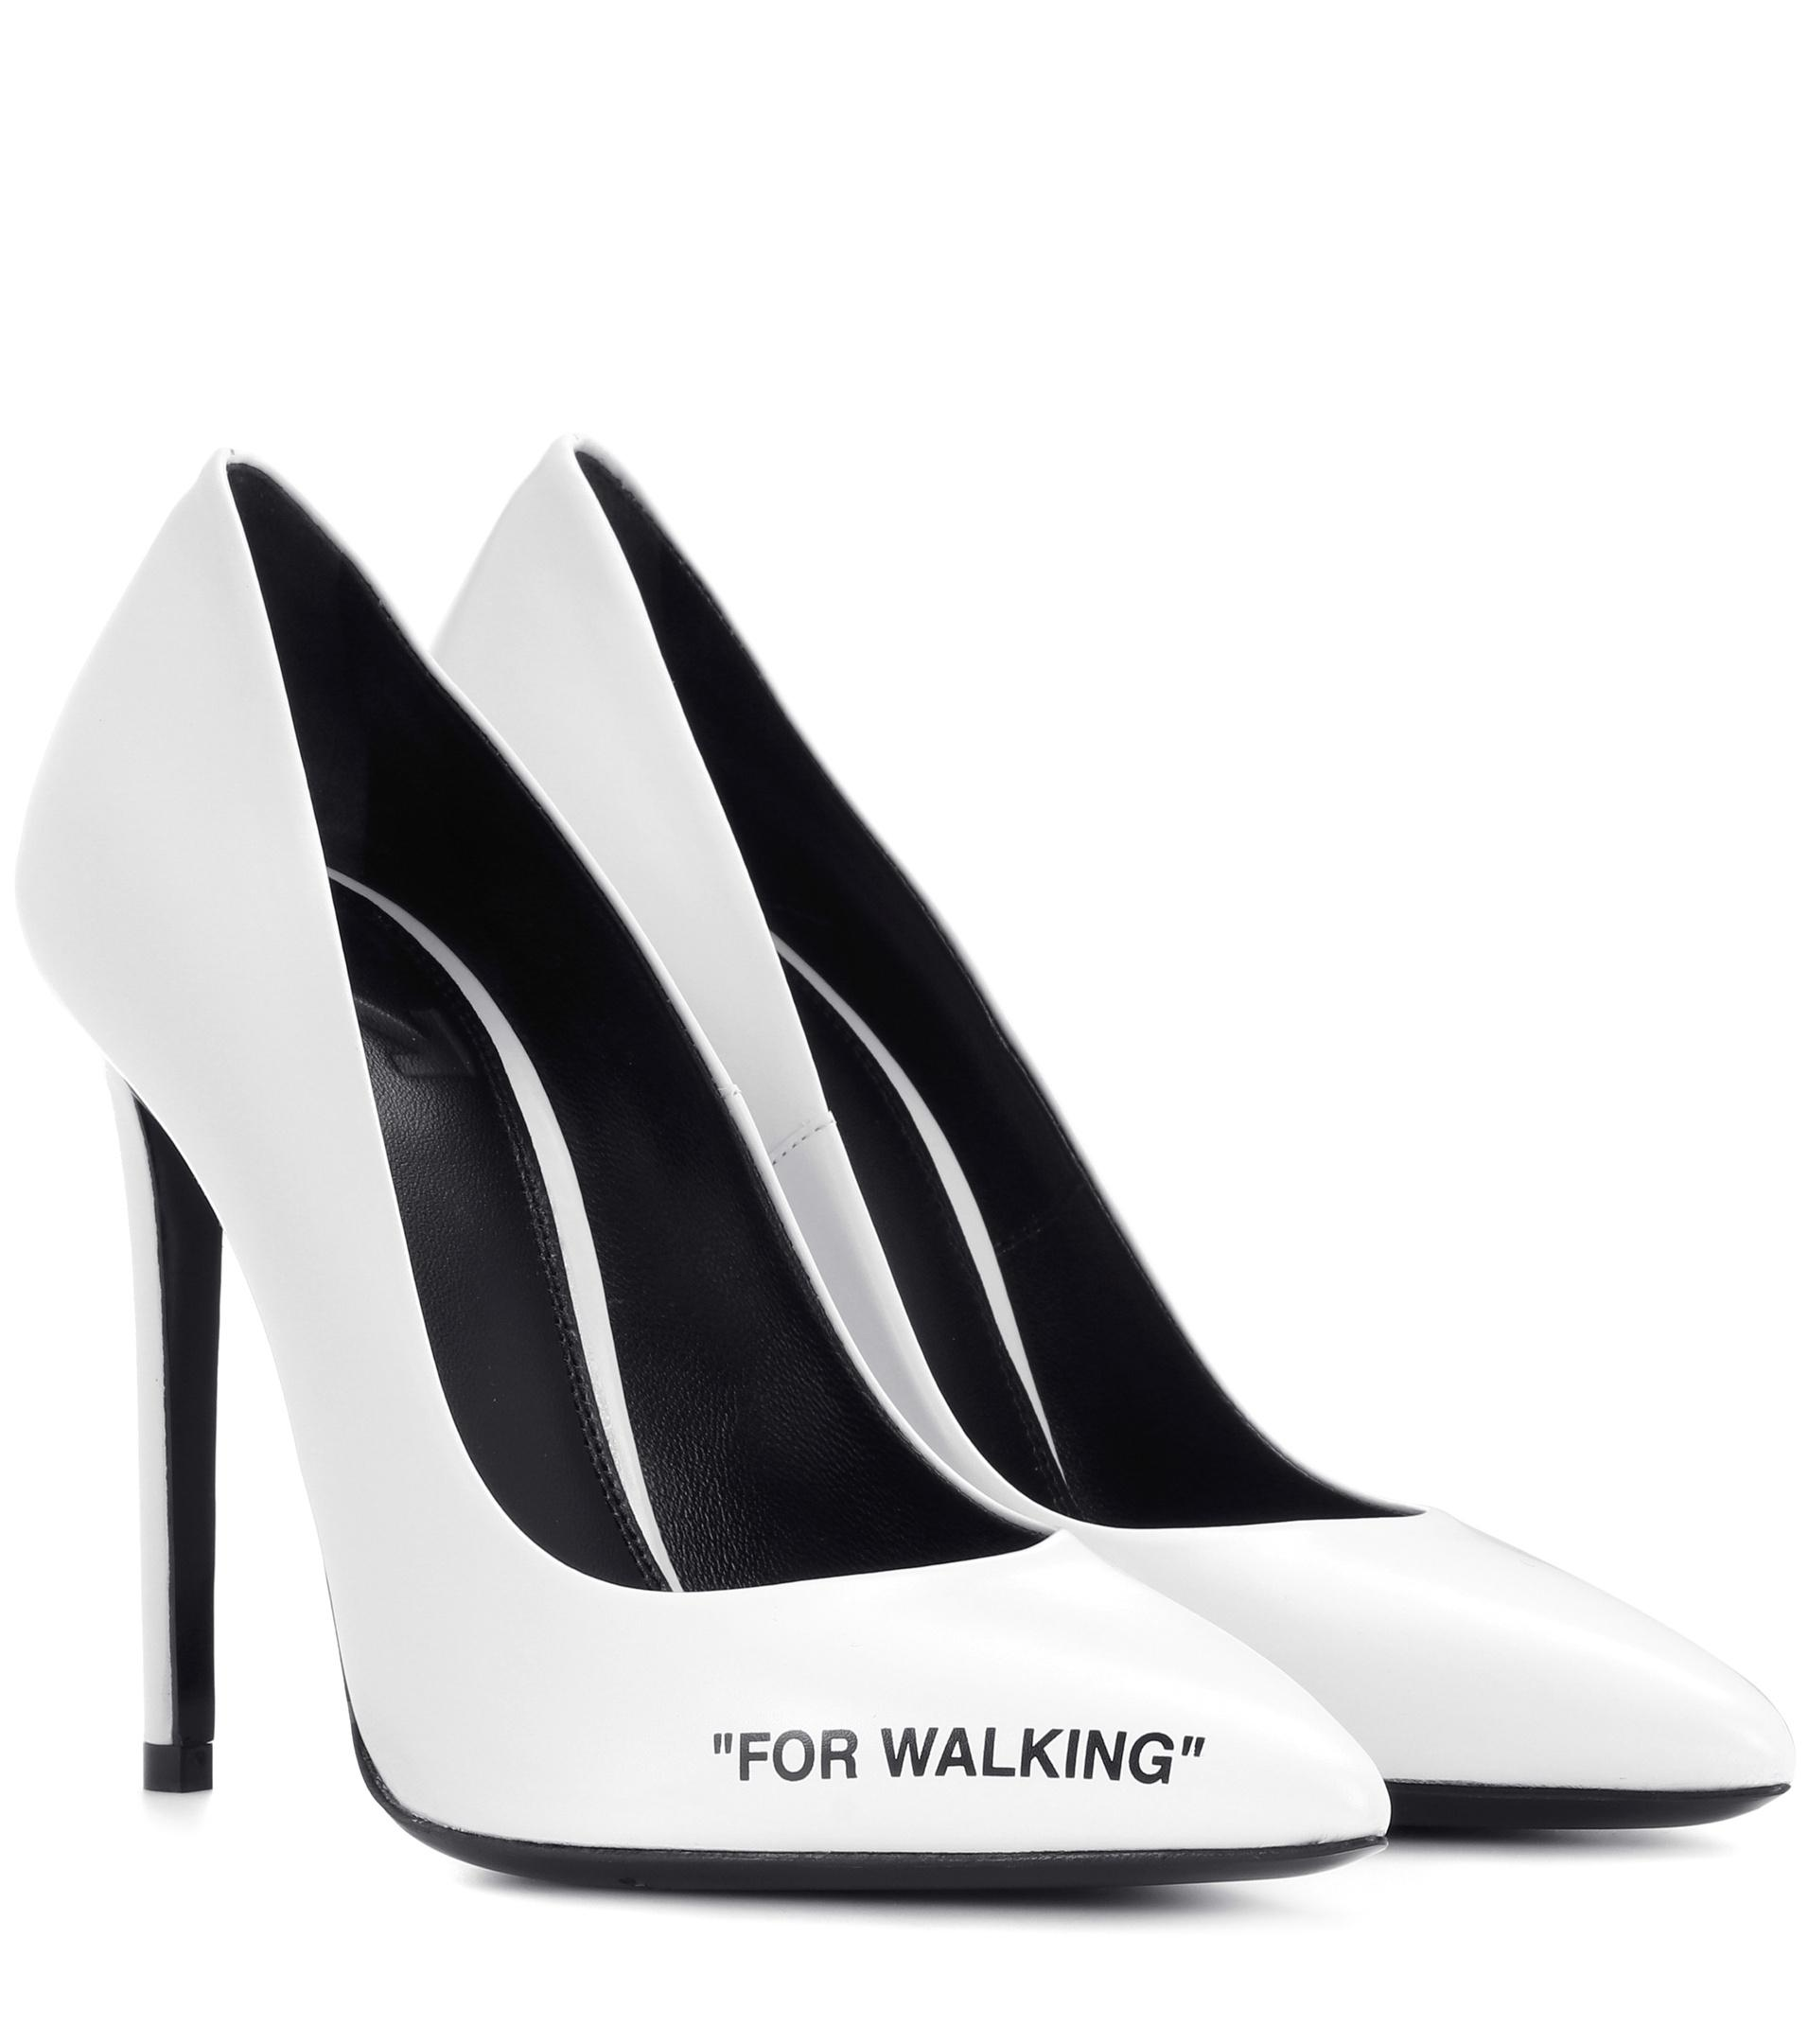 Off-White c/o Virgil Abloh For Walking Leather Pumps quality outlet store free shipping cheap price outlet exclusive for sale vmBoMW